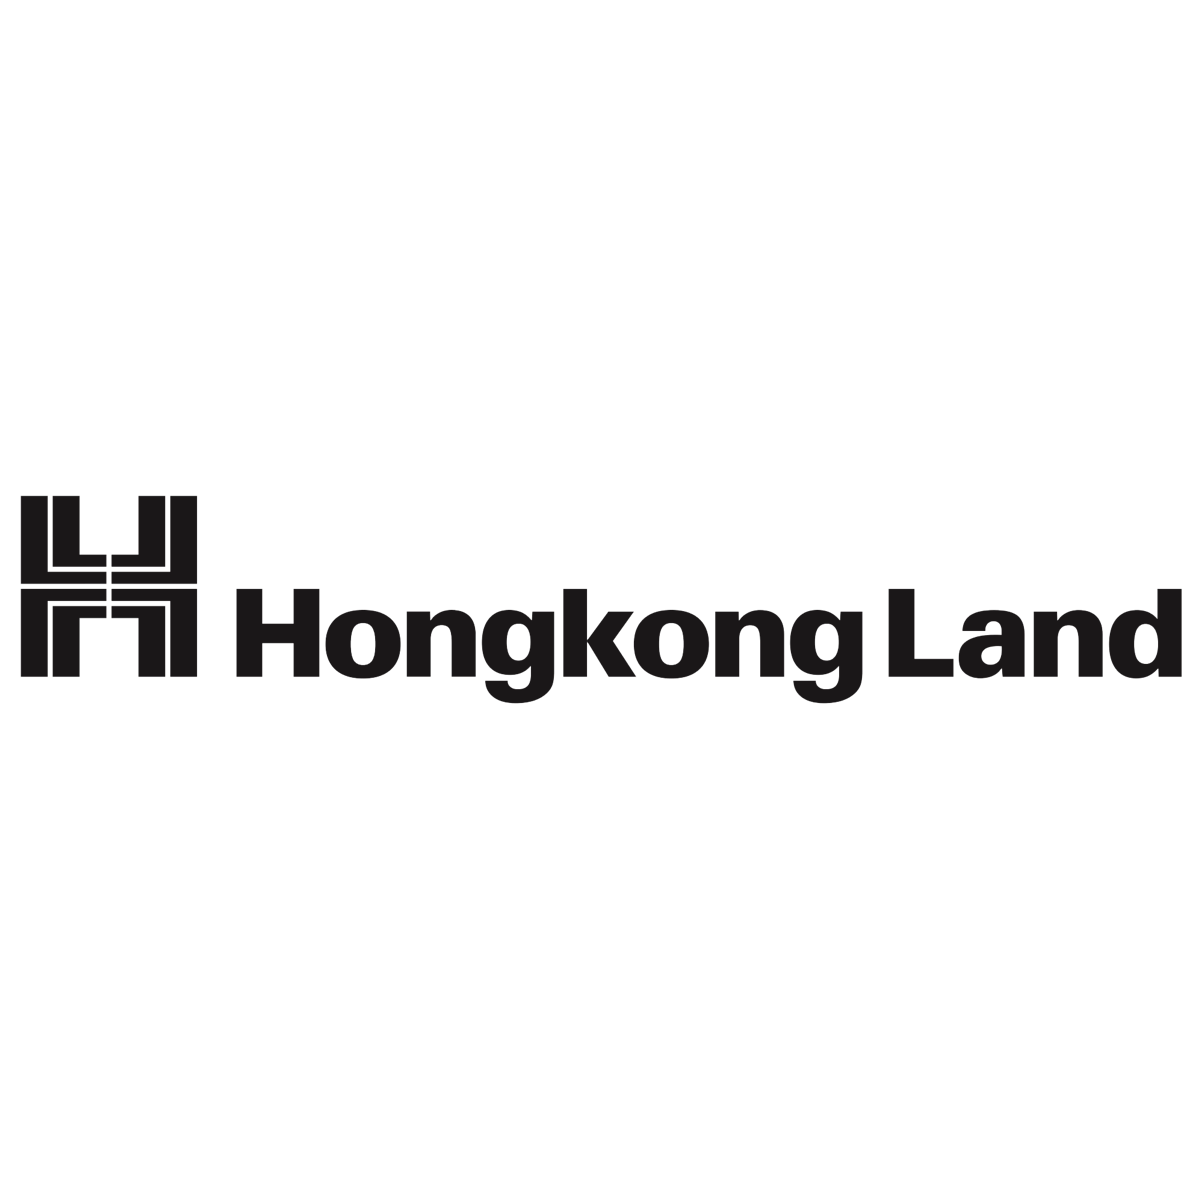 Hongkong Land (HKL SP) - DBS Vickers 2018-03-09: Investing For The Future